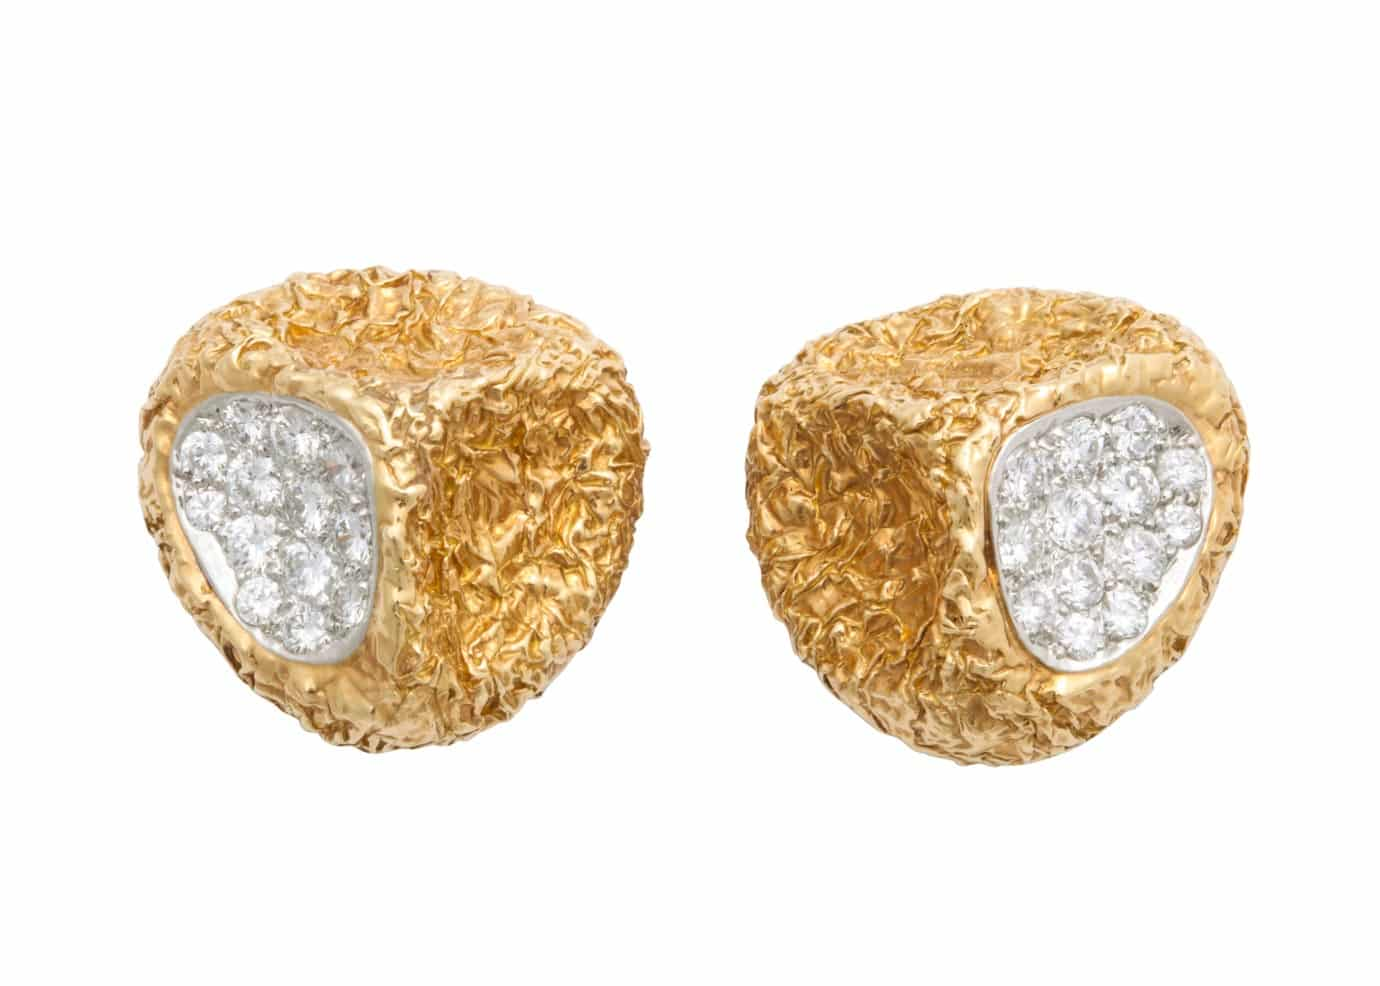 vca modernist textured earrings